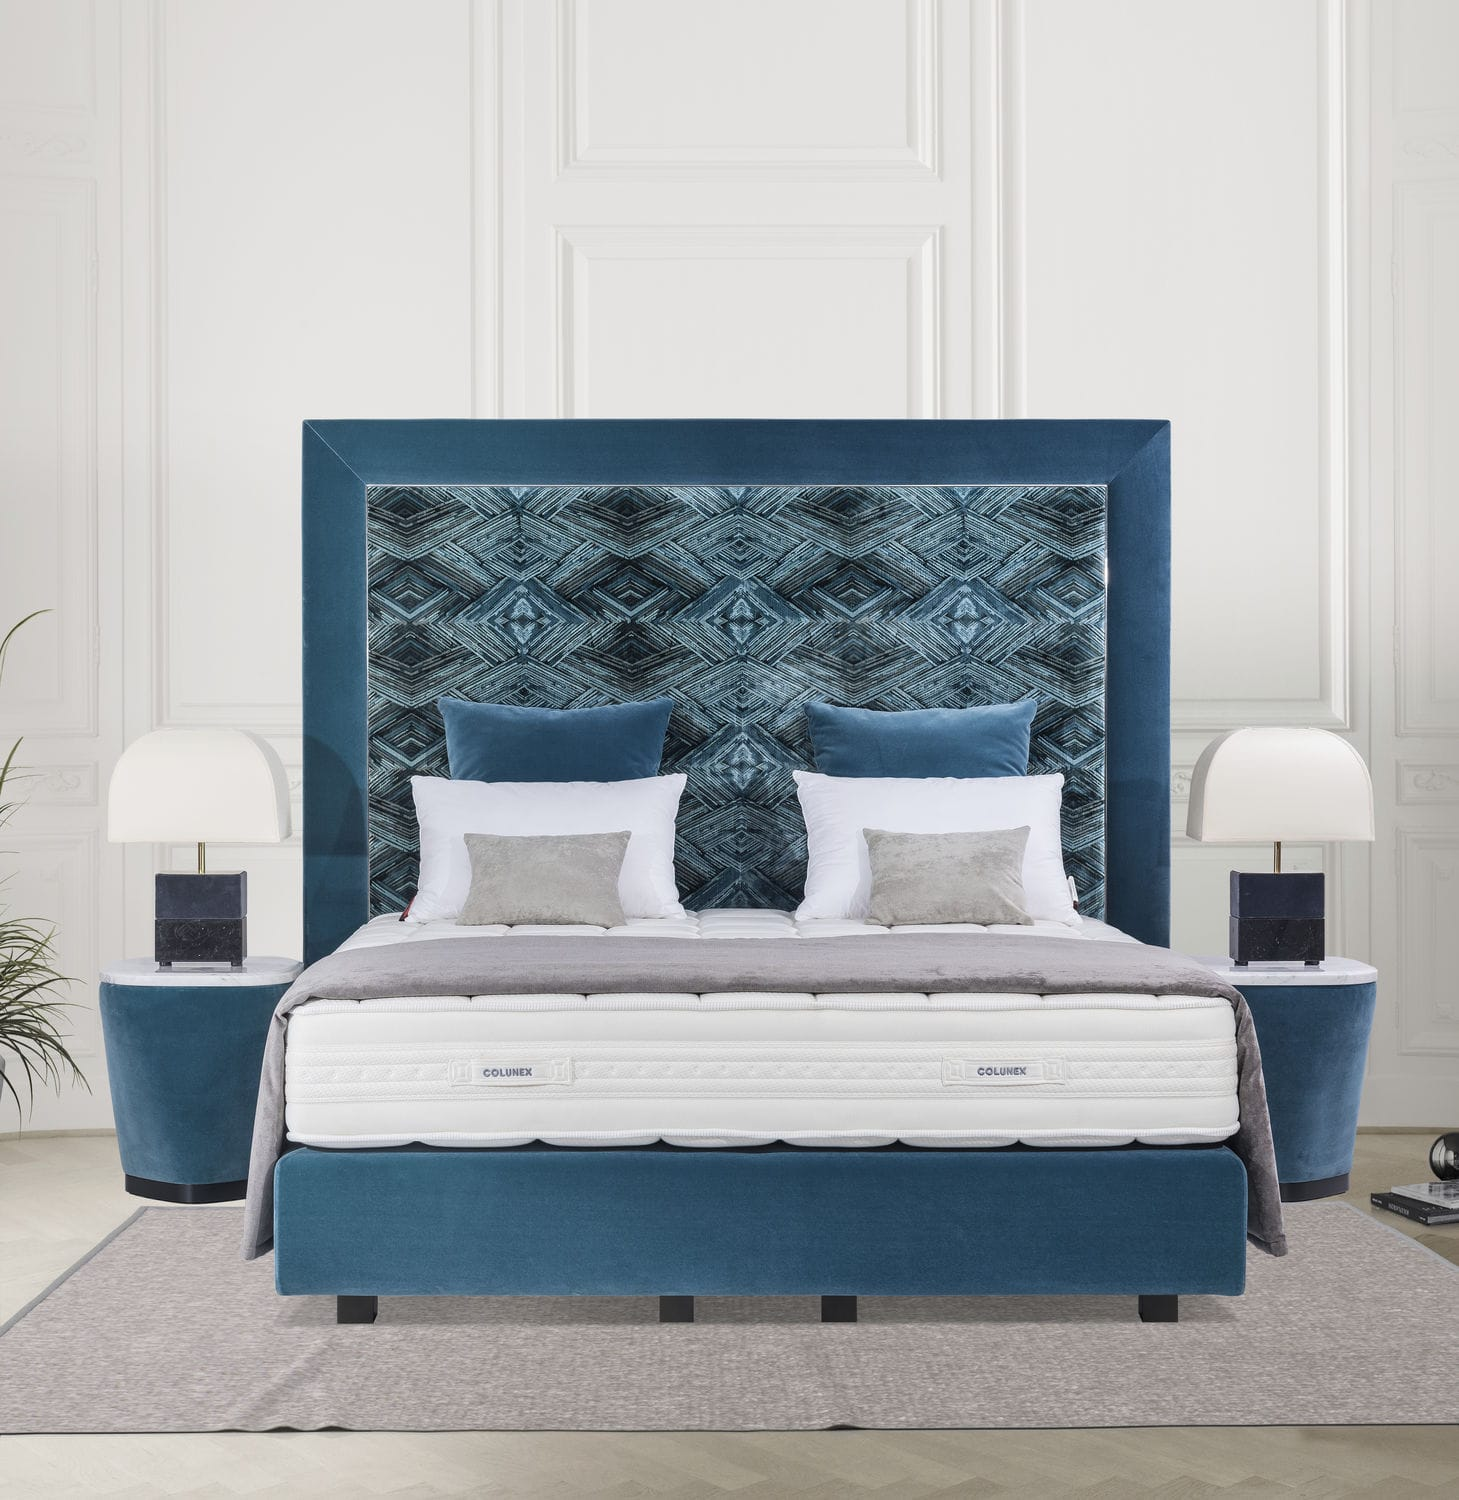 Double Bed Headboard / Contemporary / Fabric / Upholstered   ELITE Bed Base